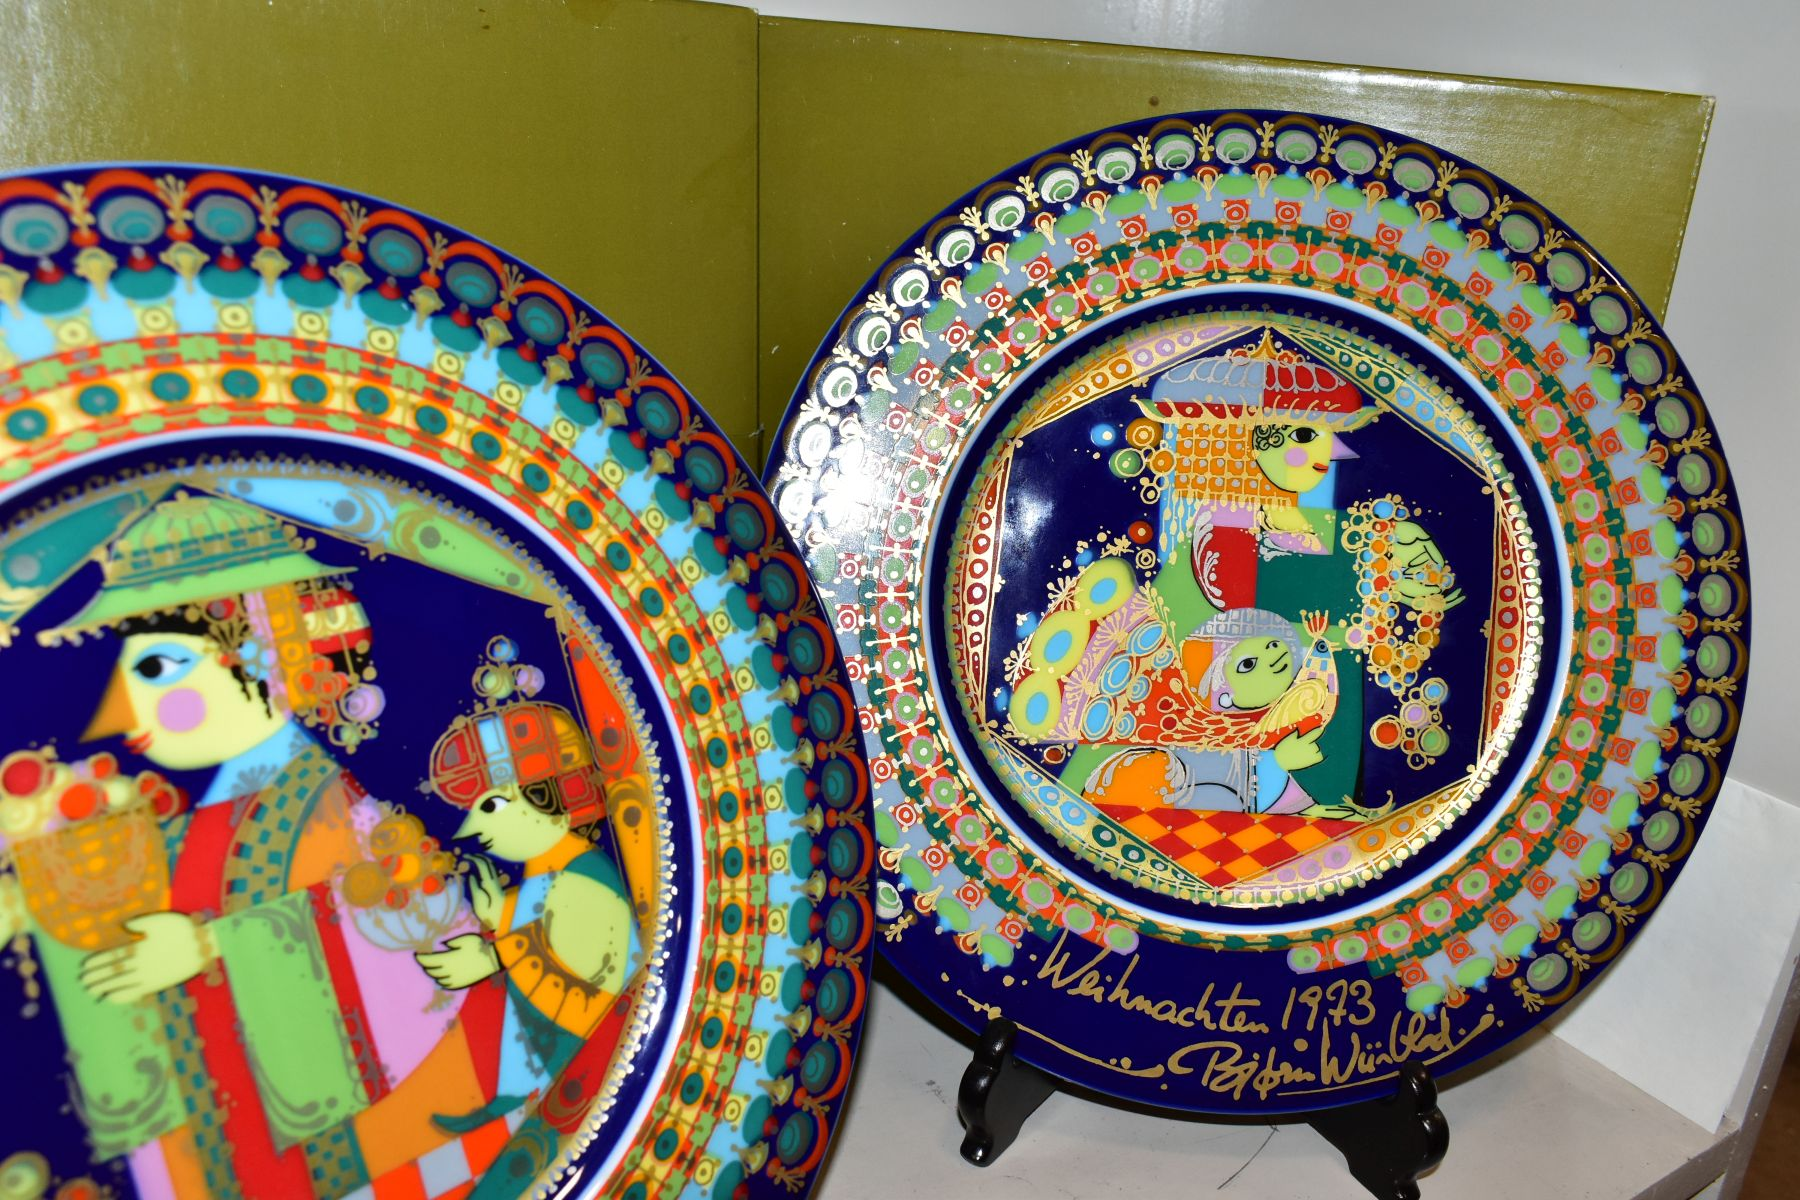 THREE BOXED ROSENTHAL CHRISTMAS PLATES, 1973, 1974 and 1975 all signed by Bijorn Wiinbald - Image 6 of 12